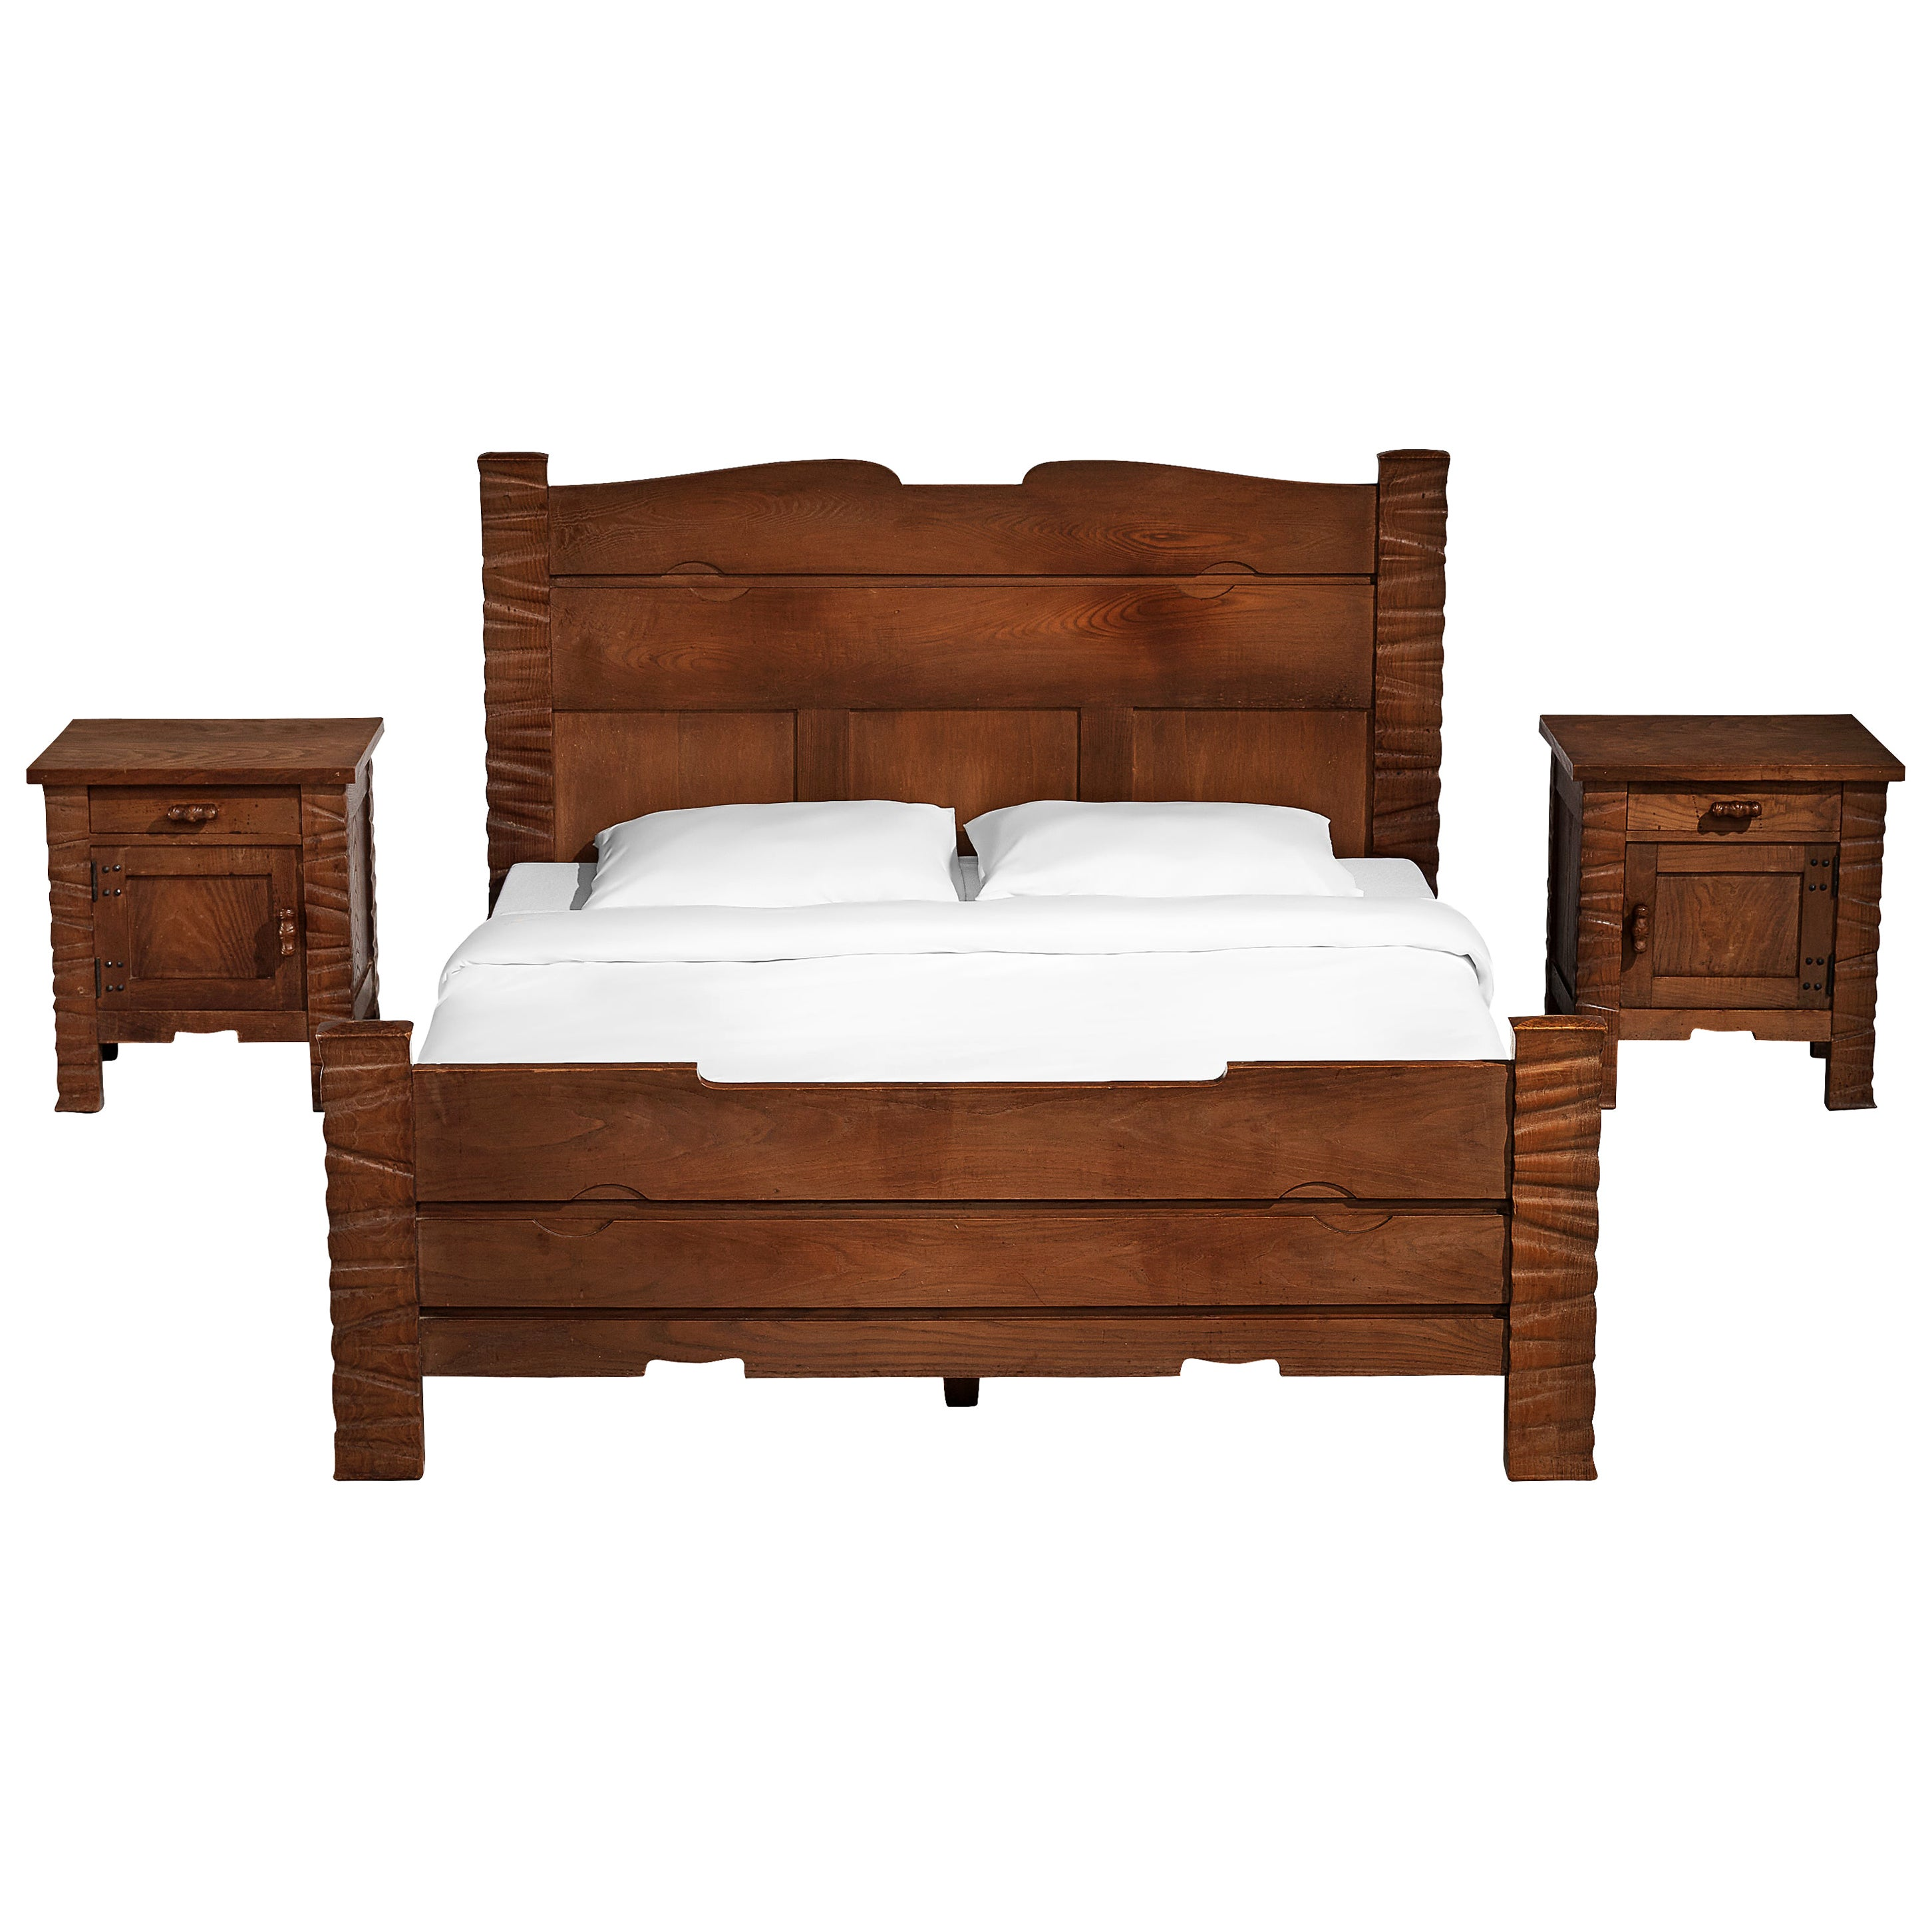 Sculptural Ernesto Valabrega Kingsize Bed in Oak with Nightstands